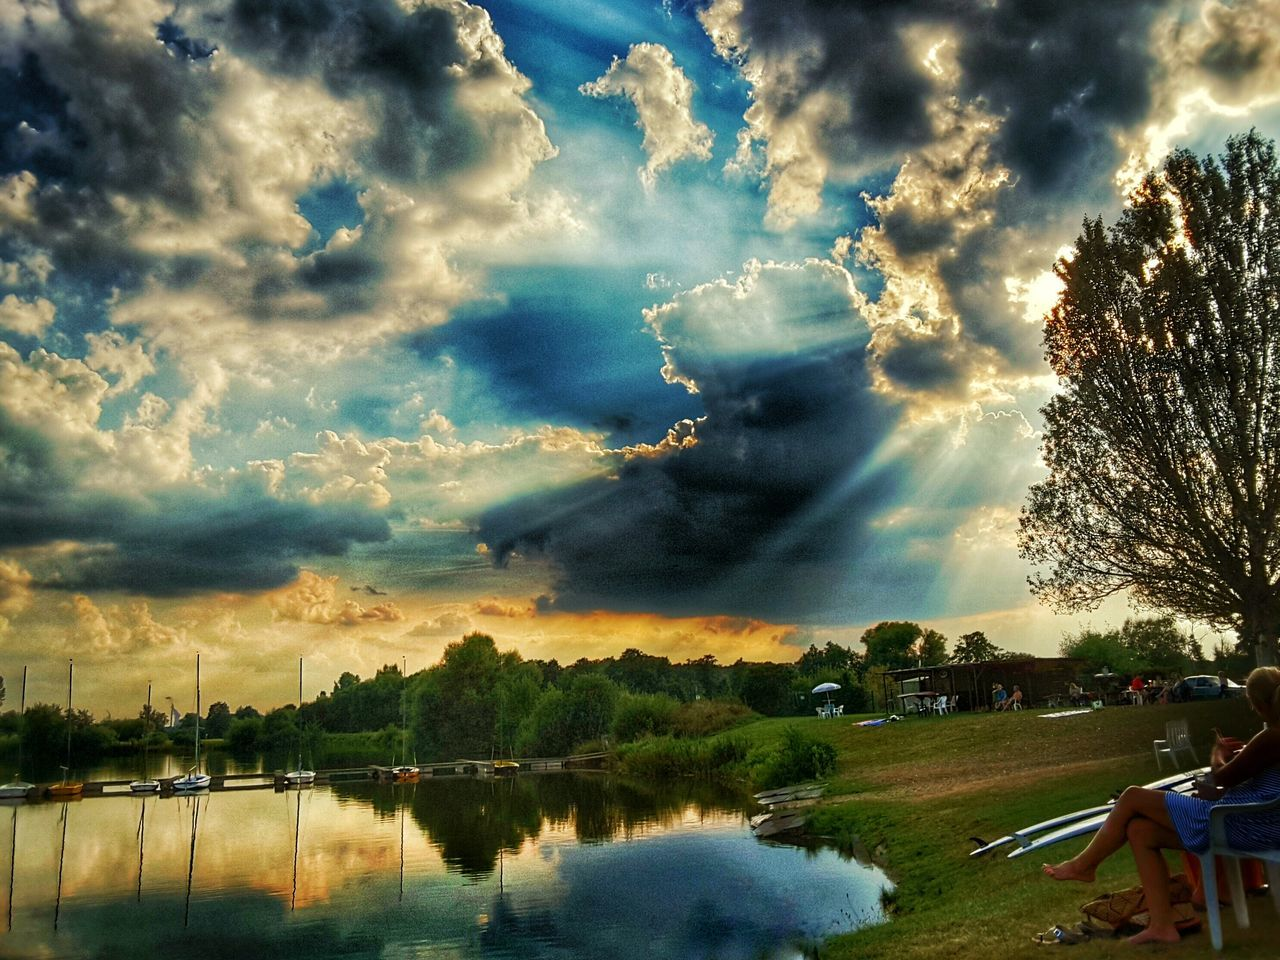 Evening Atmosphere Before Sunset Dramatic Sky Landscape Lake View Water Reflections Tranquility Lake Sunbeam Tree Sunlight Scenics Reflection Lens Flare Cloud - Sky Sky Nature Day Majestic Cloudscape Standing Water Outdoors Lake Kinzigsee Langenselbold Germany🇩🇪